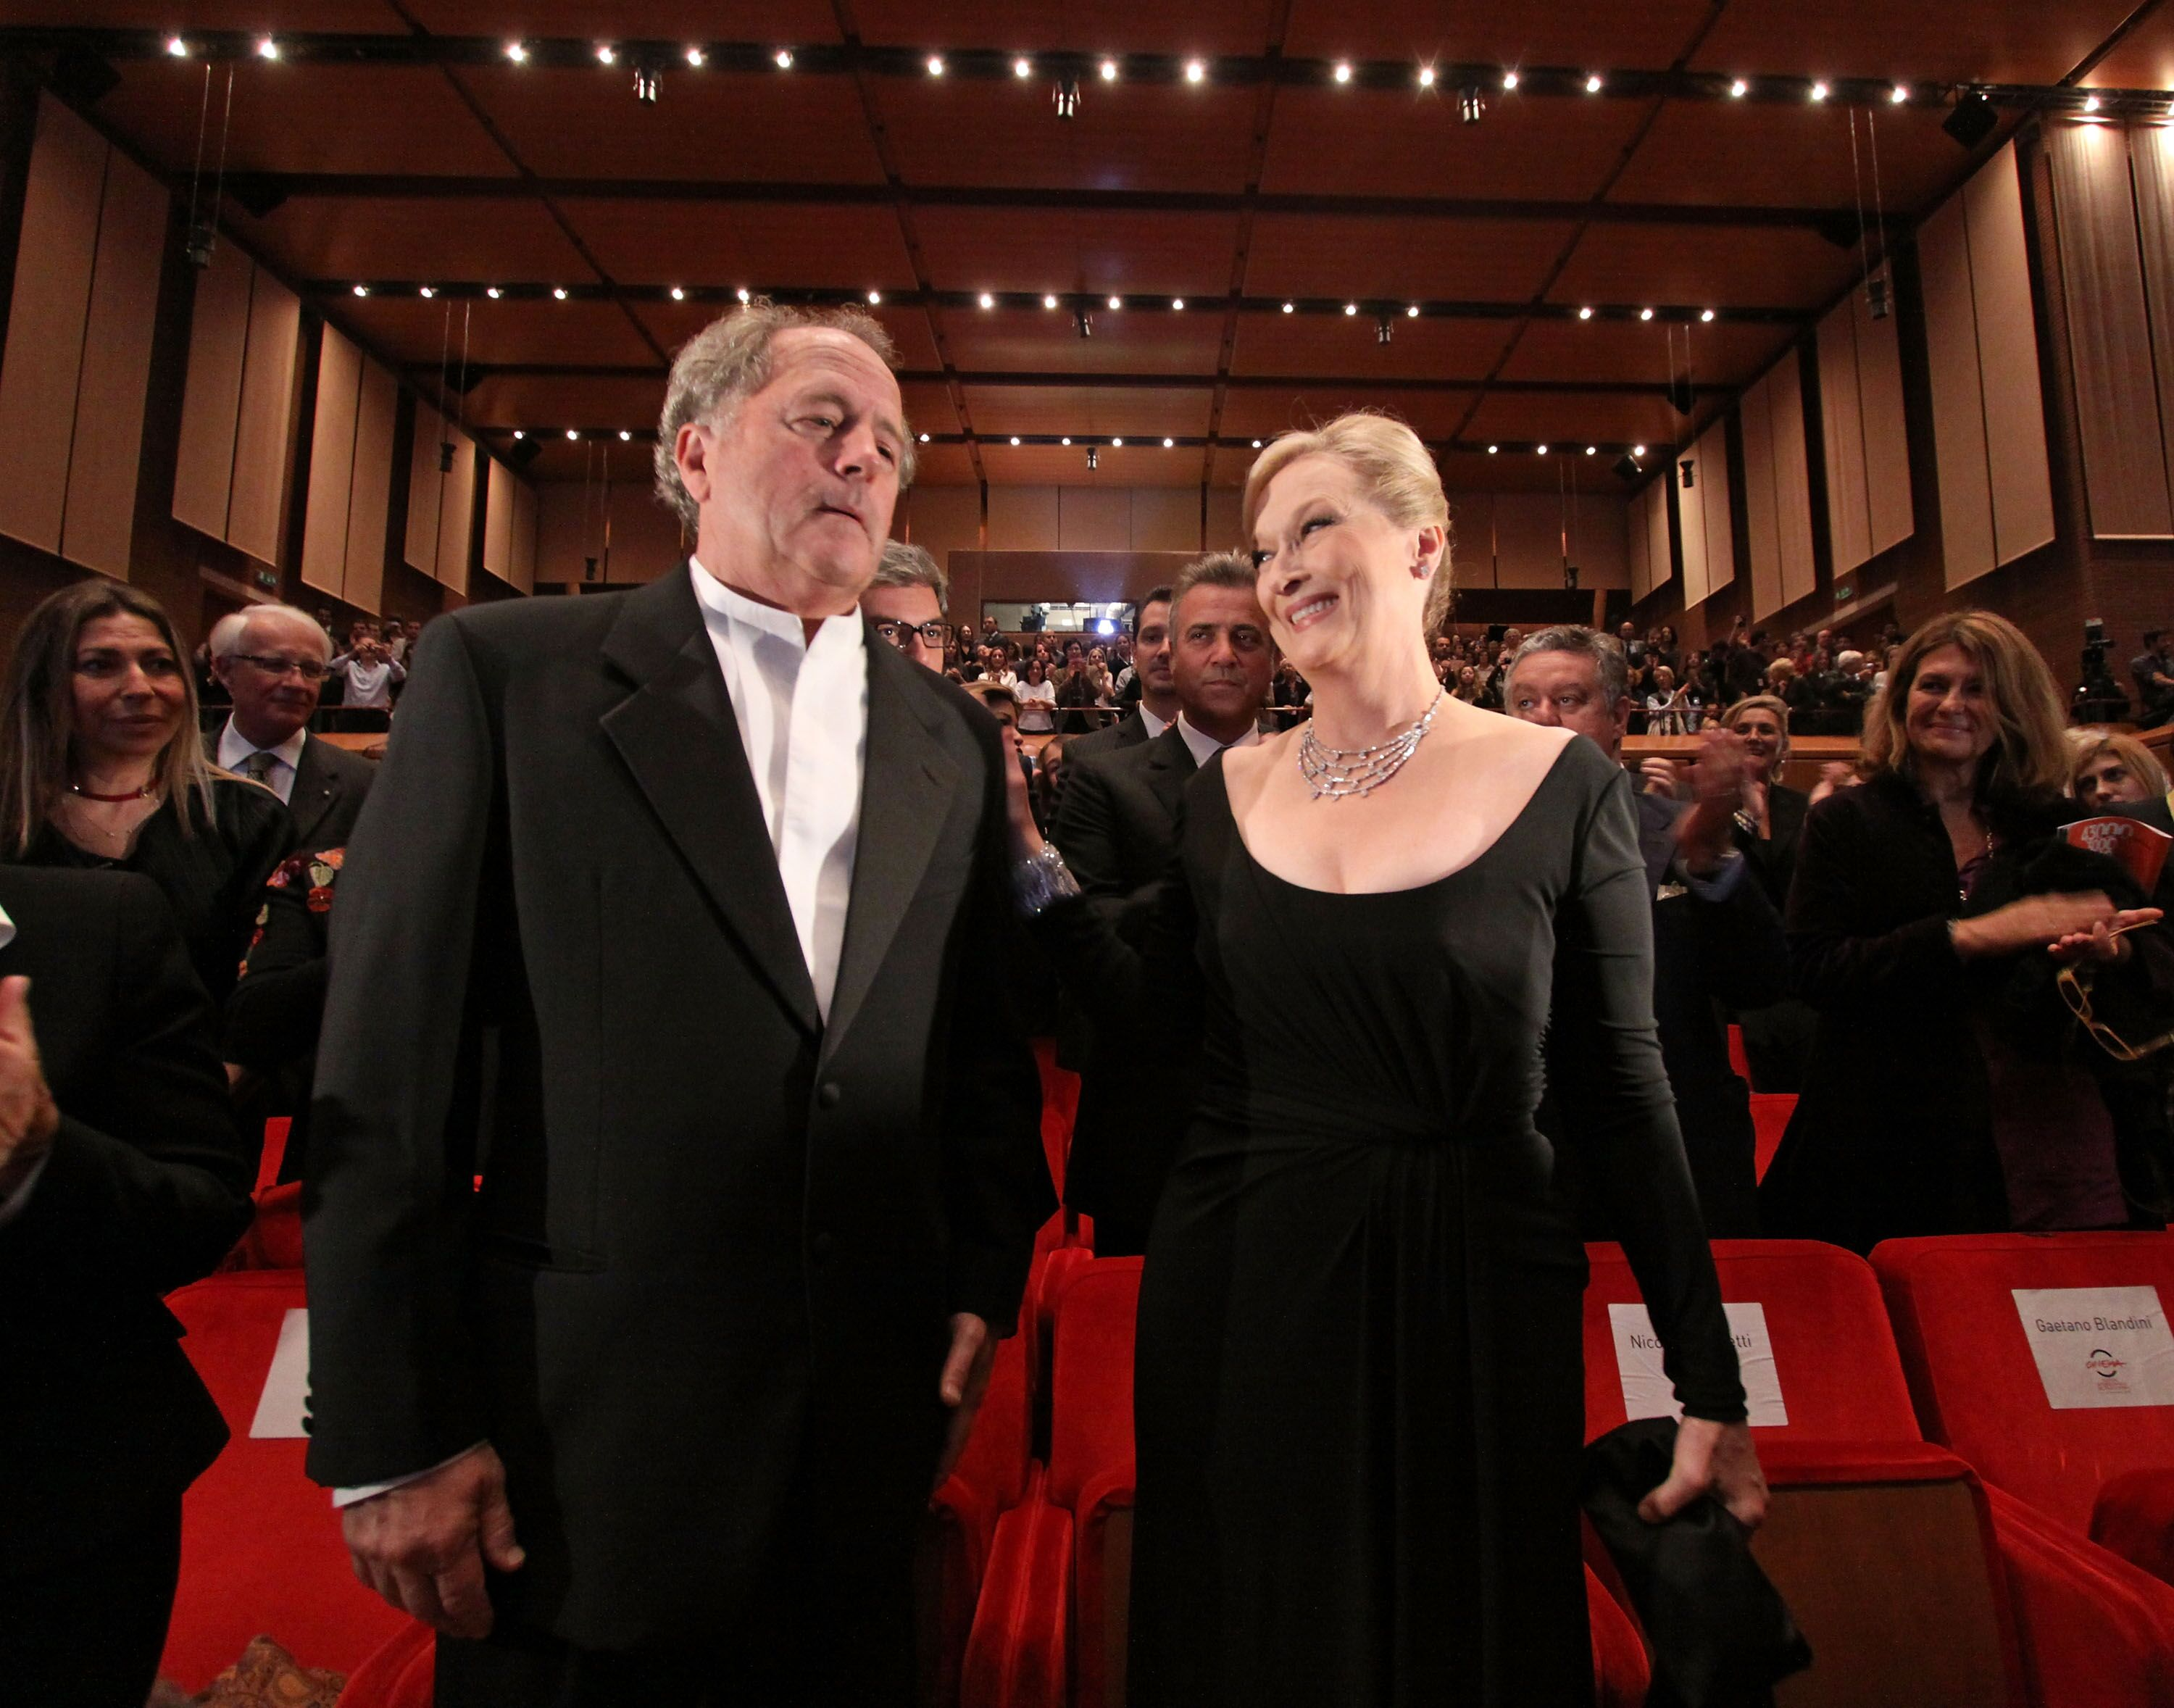 Meryl Streep and her husband Don Gummer during the Official Awards Ceremony. | Source: Getty Images